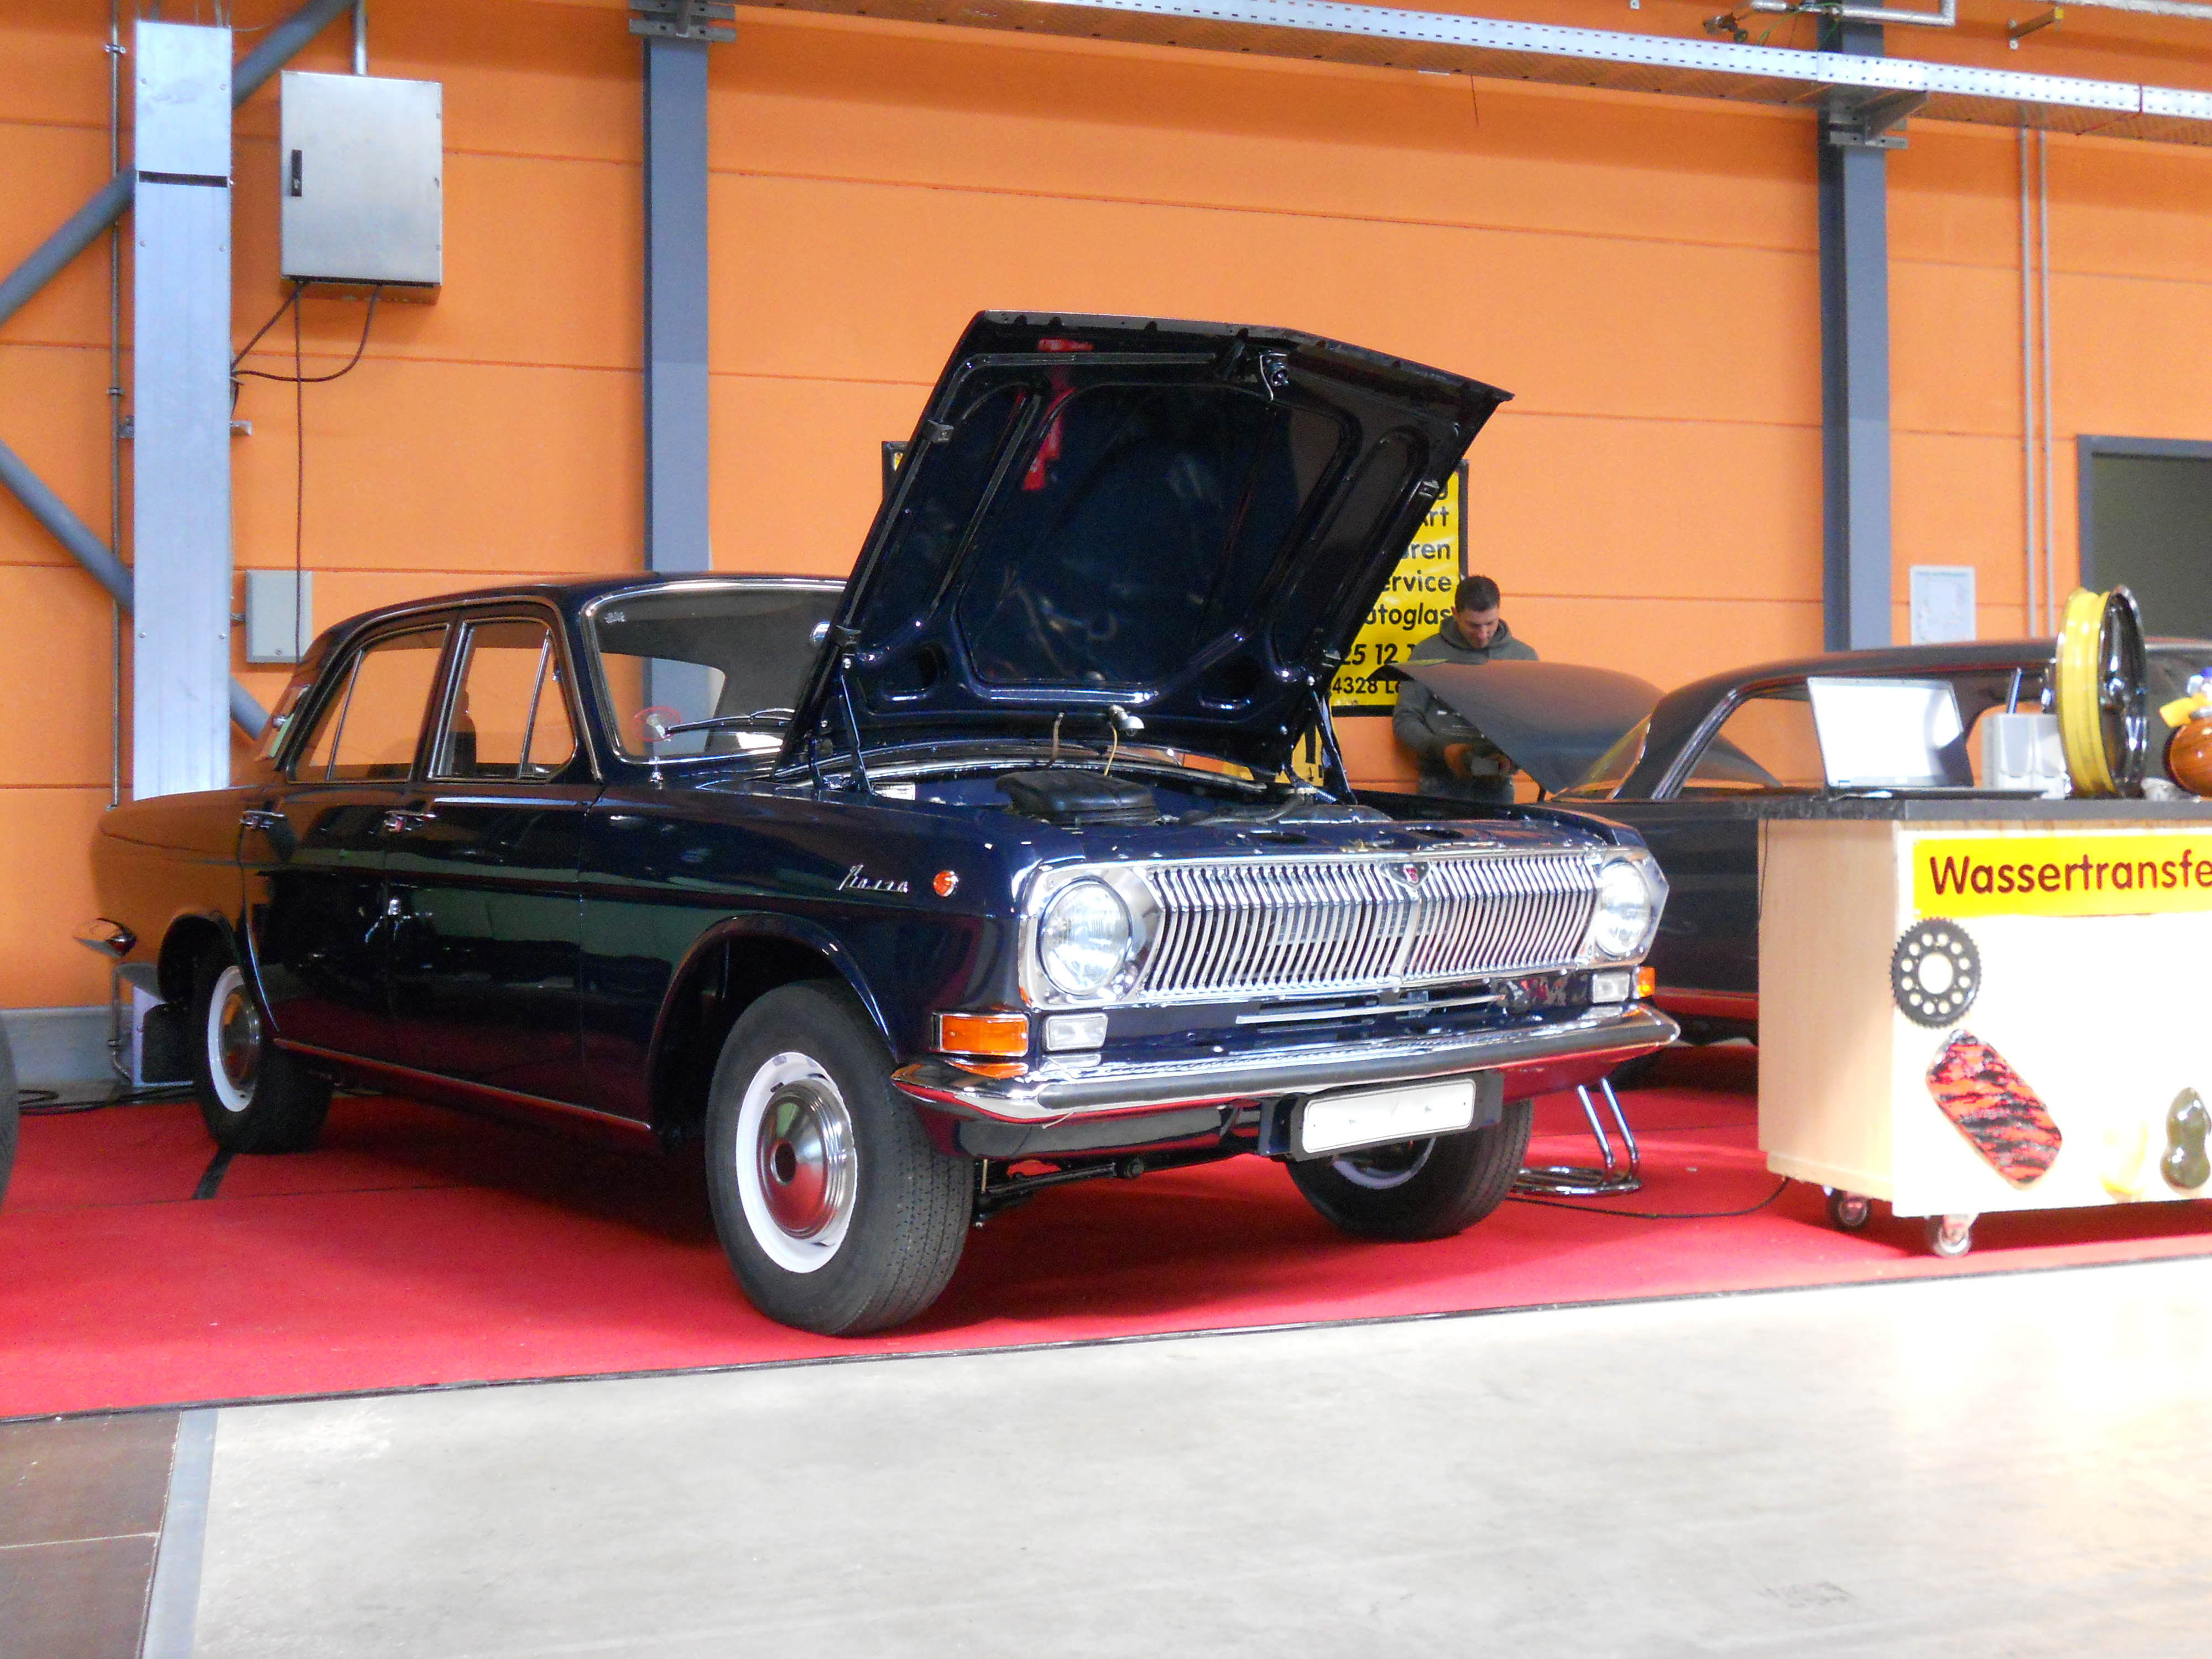 GAZ-M24 / GAZ 24 Volga Sedan (1968-1982) | Flickr - Photo Sharing!